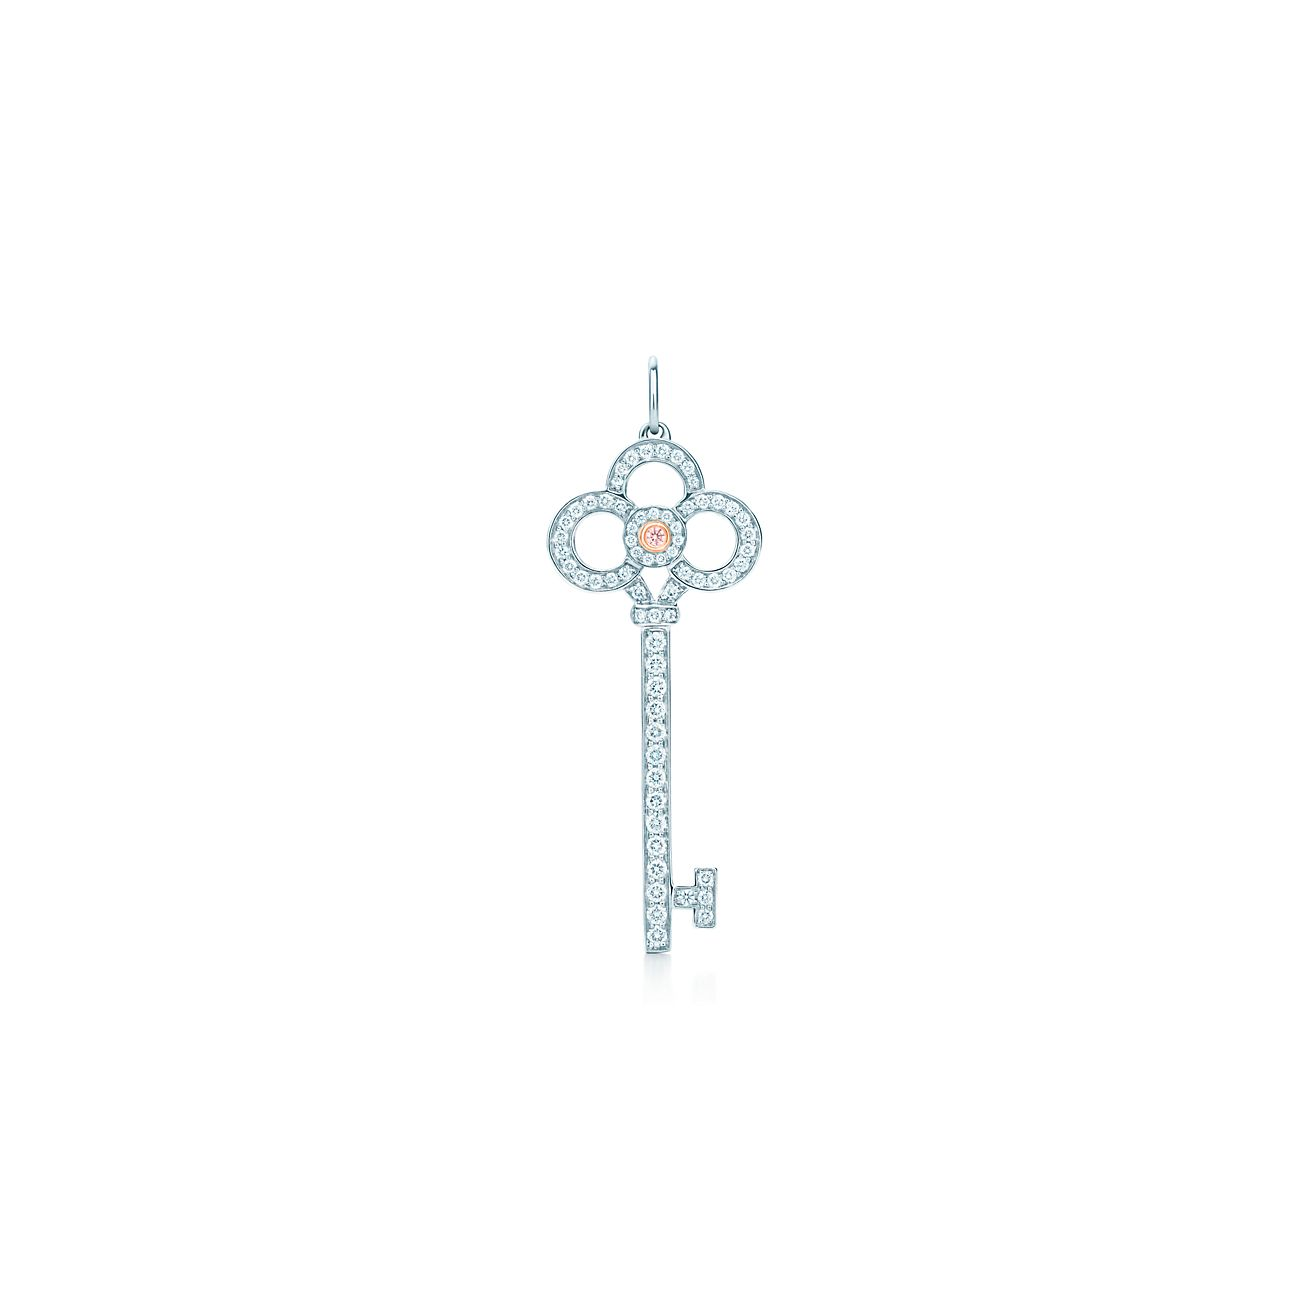 Tiffany keys crown key pendant in platinum and 18k rose gold with tiffany keyscrown key pendant aloadofball Gallery